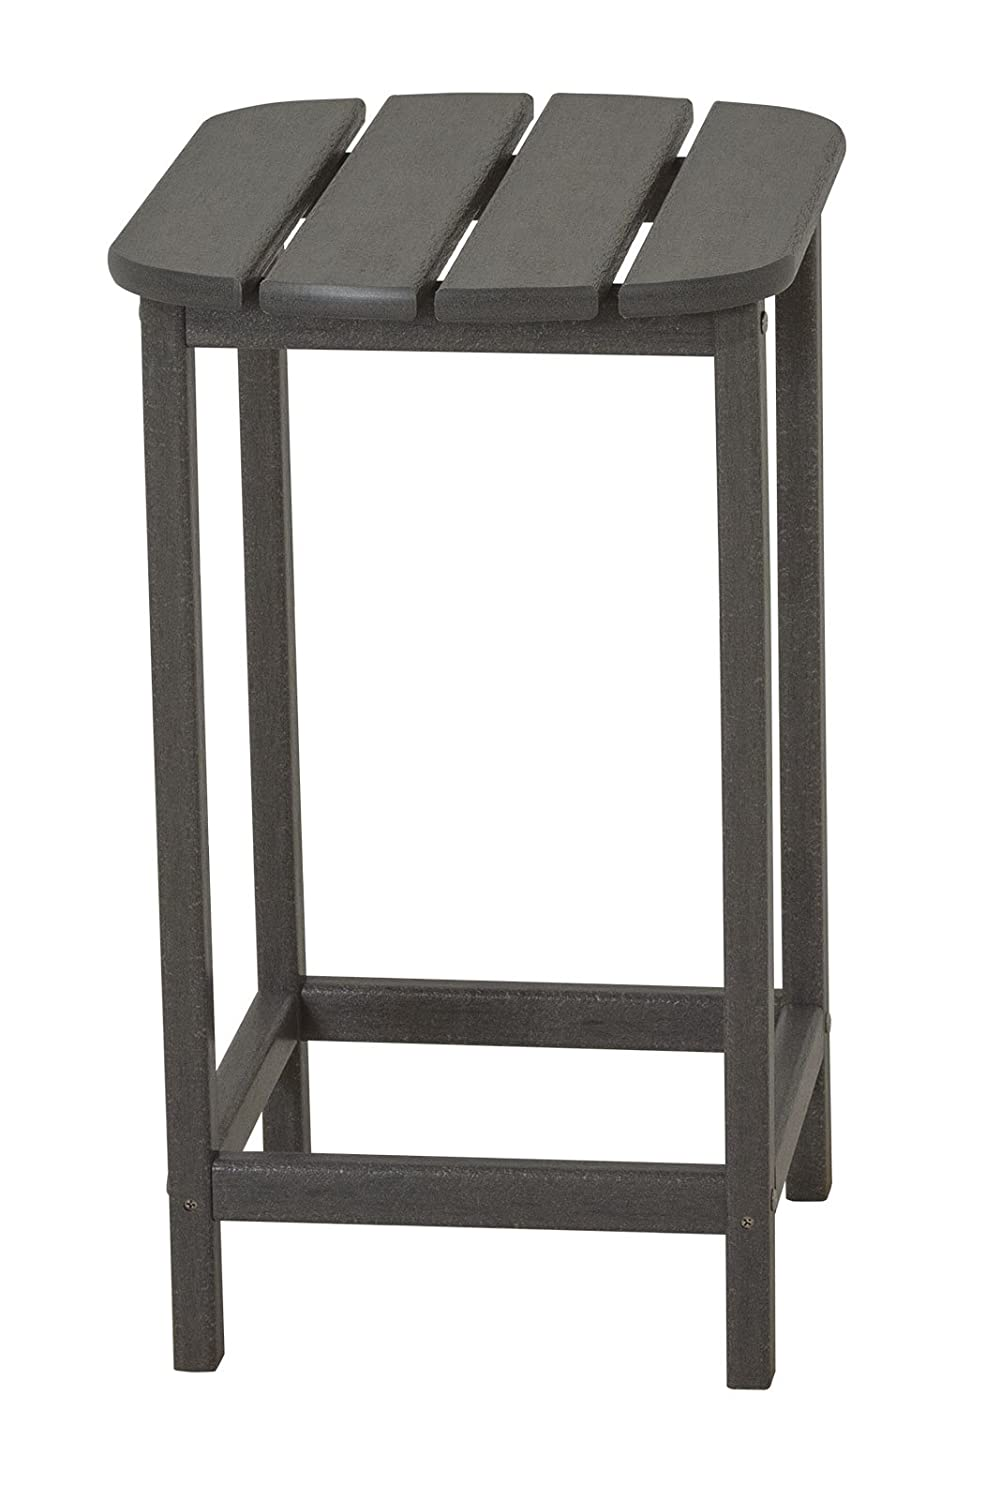 POLYWOOD SBT26GY South Beach Counter Side Table, 26-Inch, Slate Grey